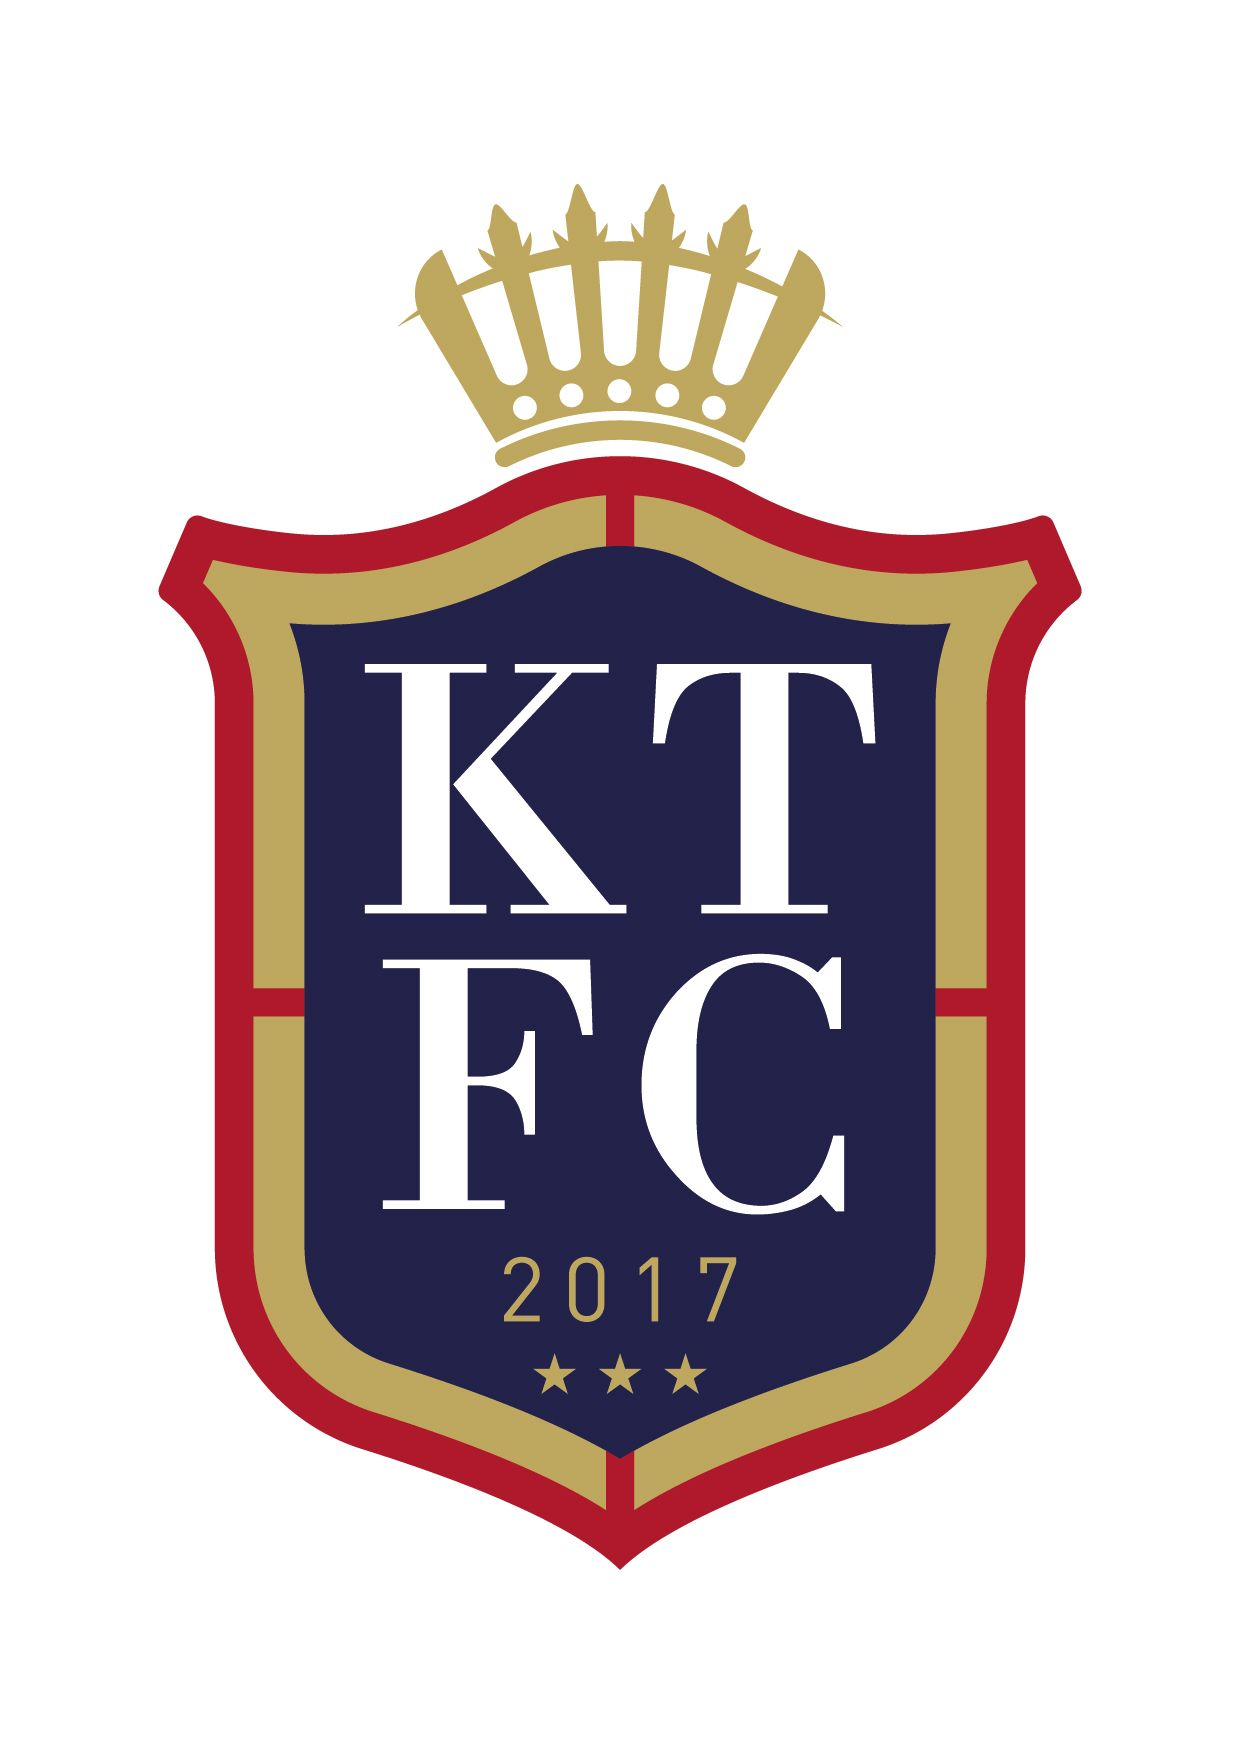 Image result for ktfc crest